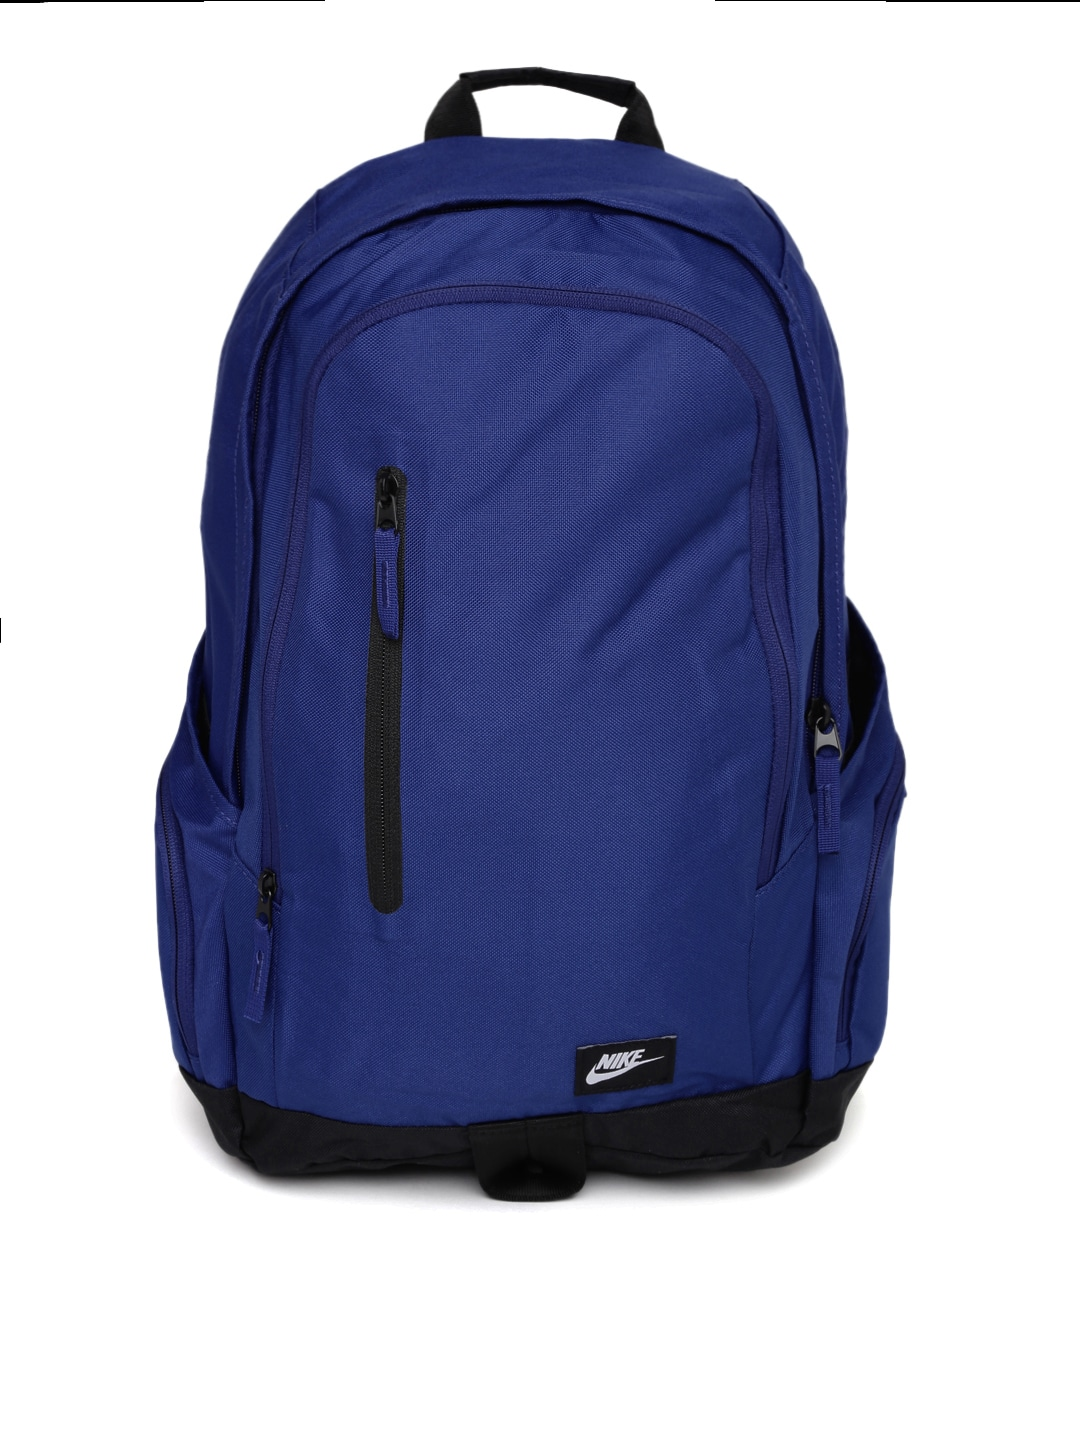 nike fluorescent backpack c51abfccabdc7